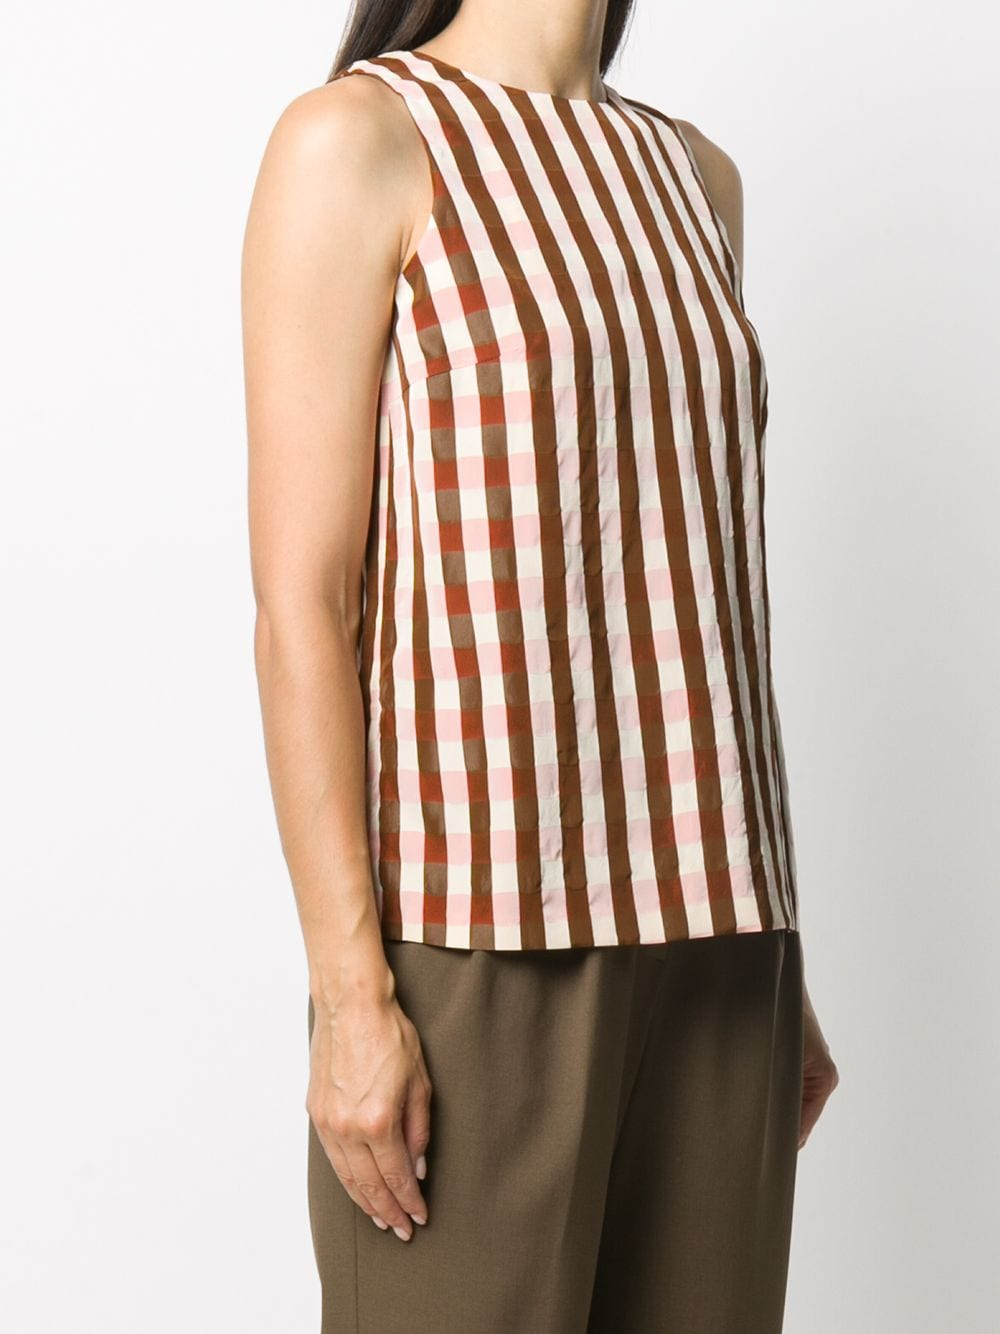 Brown,pink and beige striped sleeveless blouse   ALBERTO BIANI |  | MM826-VI201861